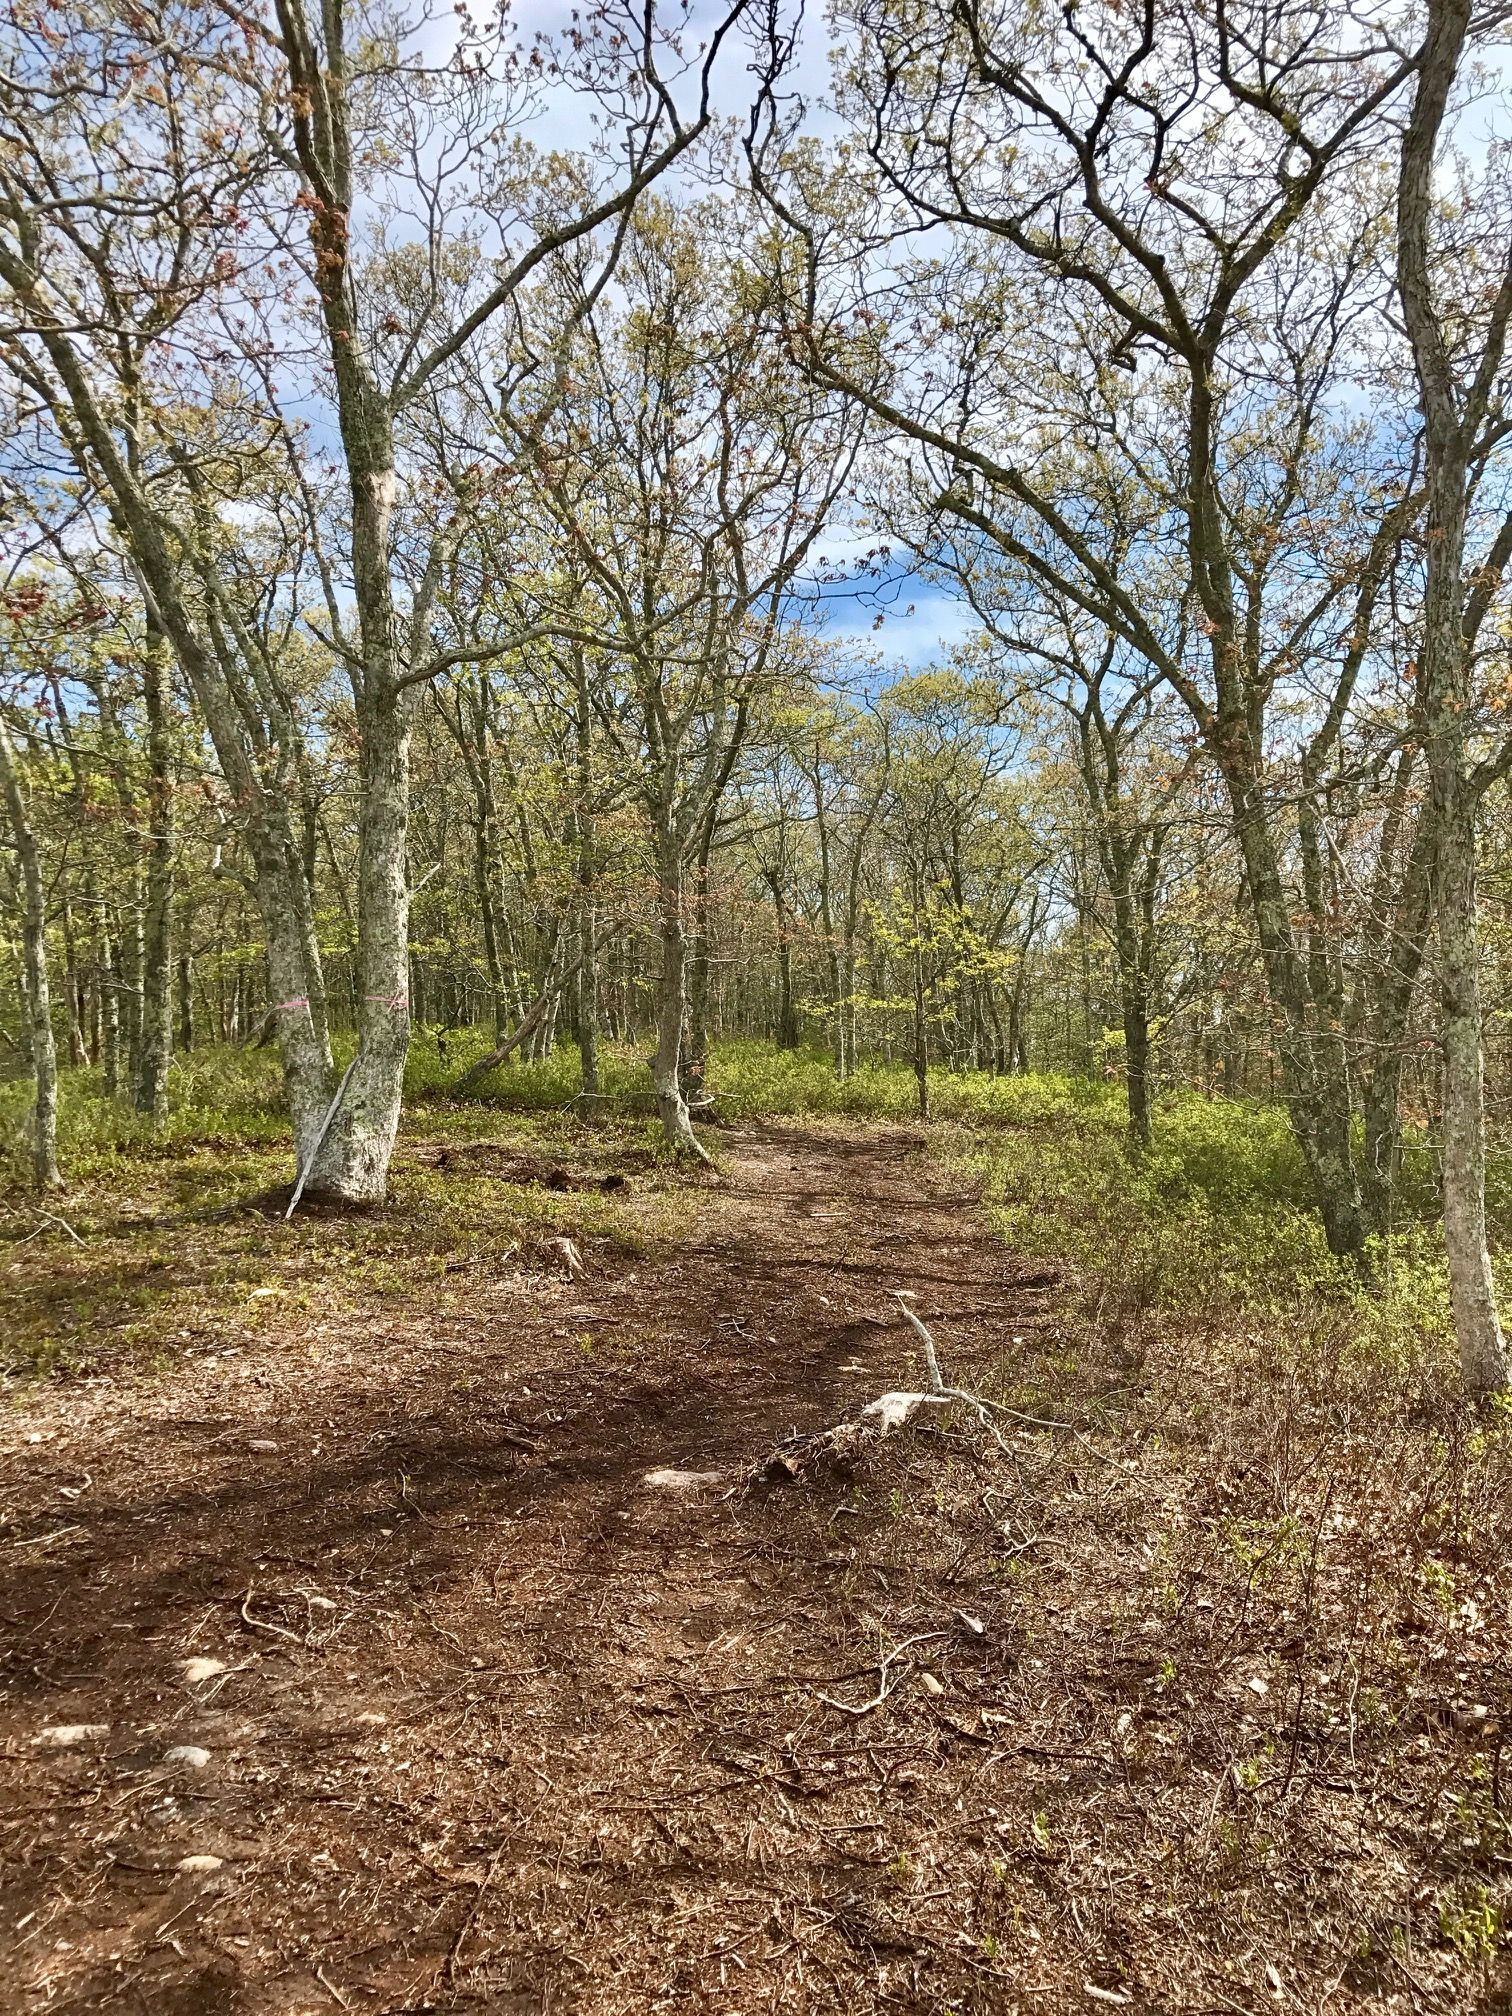 Additional photo for property listing at 42 Fire Tower Road 42 Fire Tower Road West Tisbury, Massachusetts,02575 United States